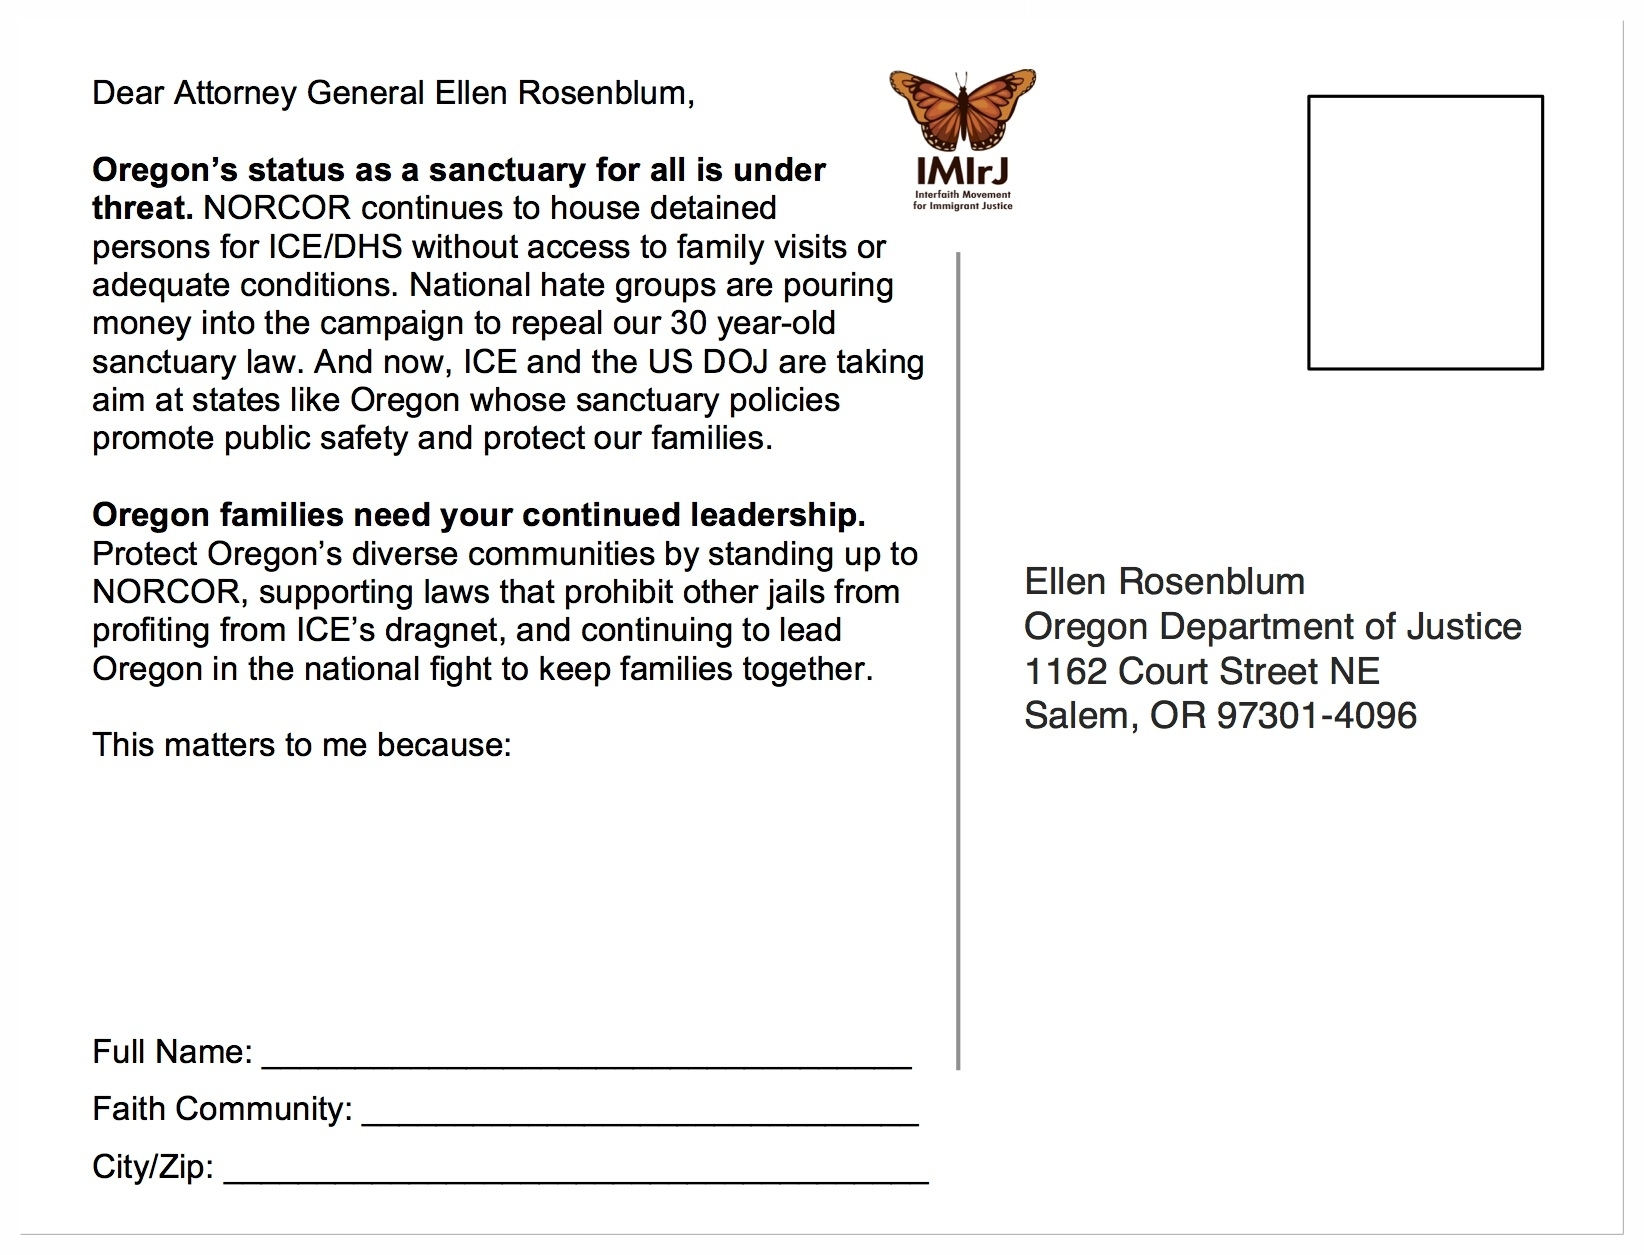 Collect & Send! - We need Oregon Attorney General Ellen Rosenblum to defend Sanctuary and challenge NORCOR's contract with ICE. Print out these postcards and ask your fellow community members to personalize, sign and send. Provide postage to make it easy as 1, 2, 3!